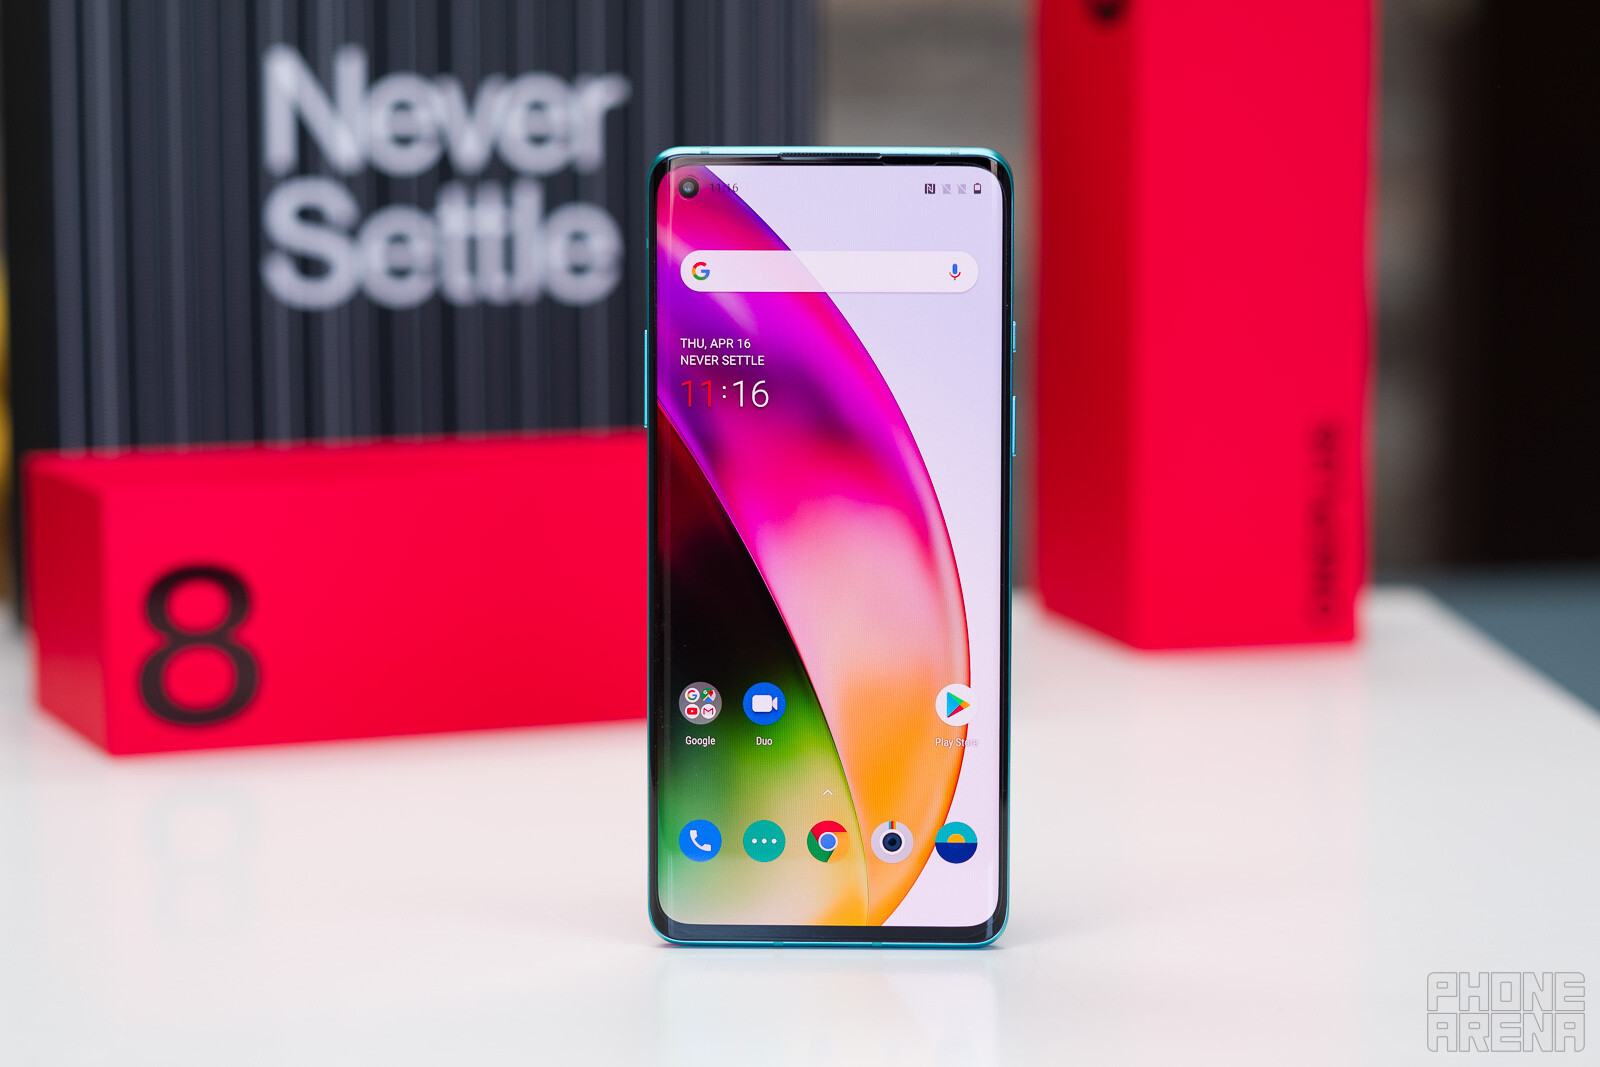 OnePlus starts Black Friday early: get deals on OnePlus 8T, OnePlus 8 Pro, OnePlus 8